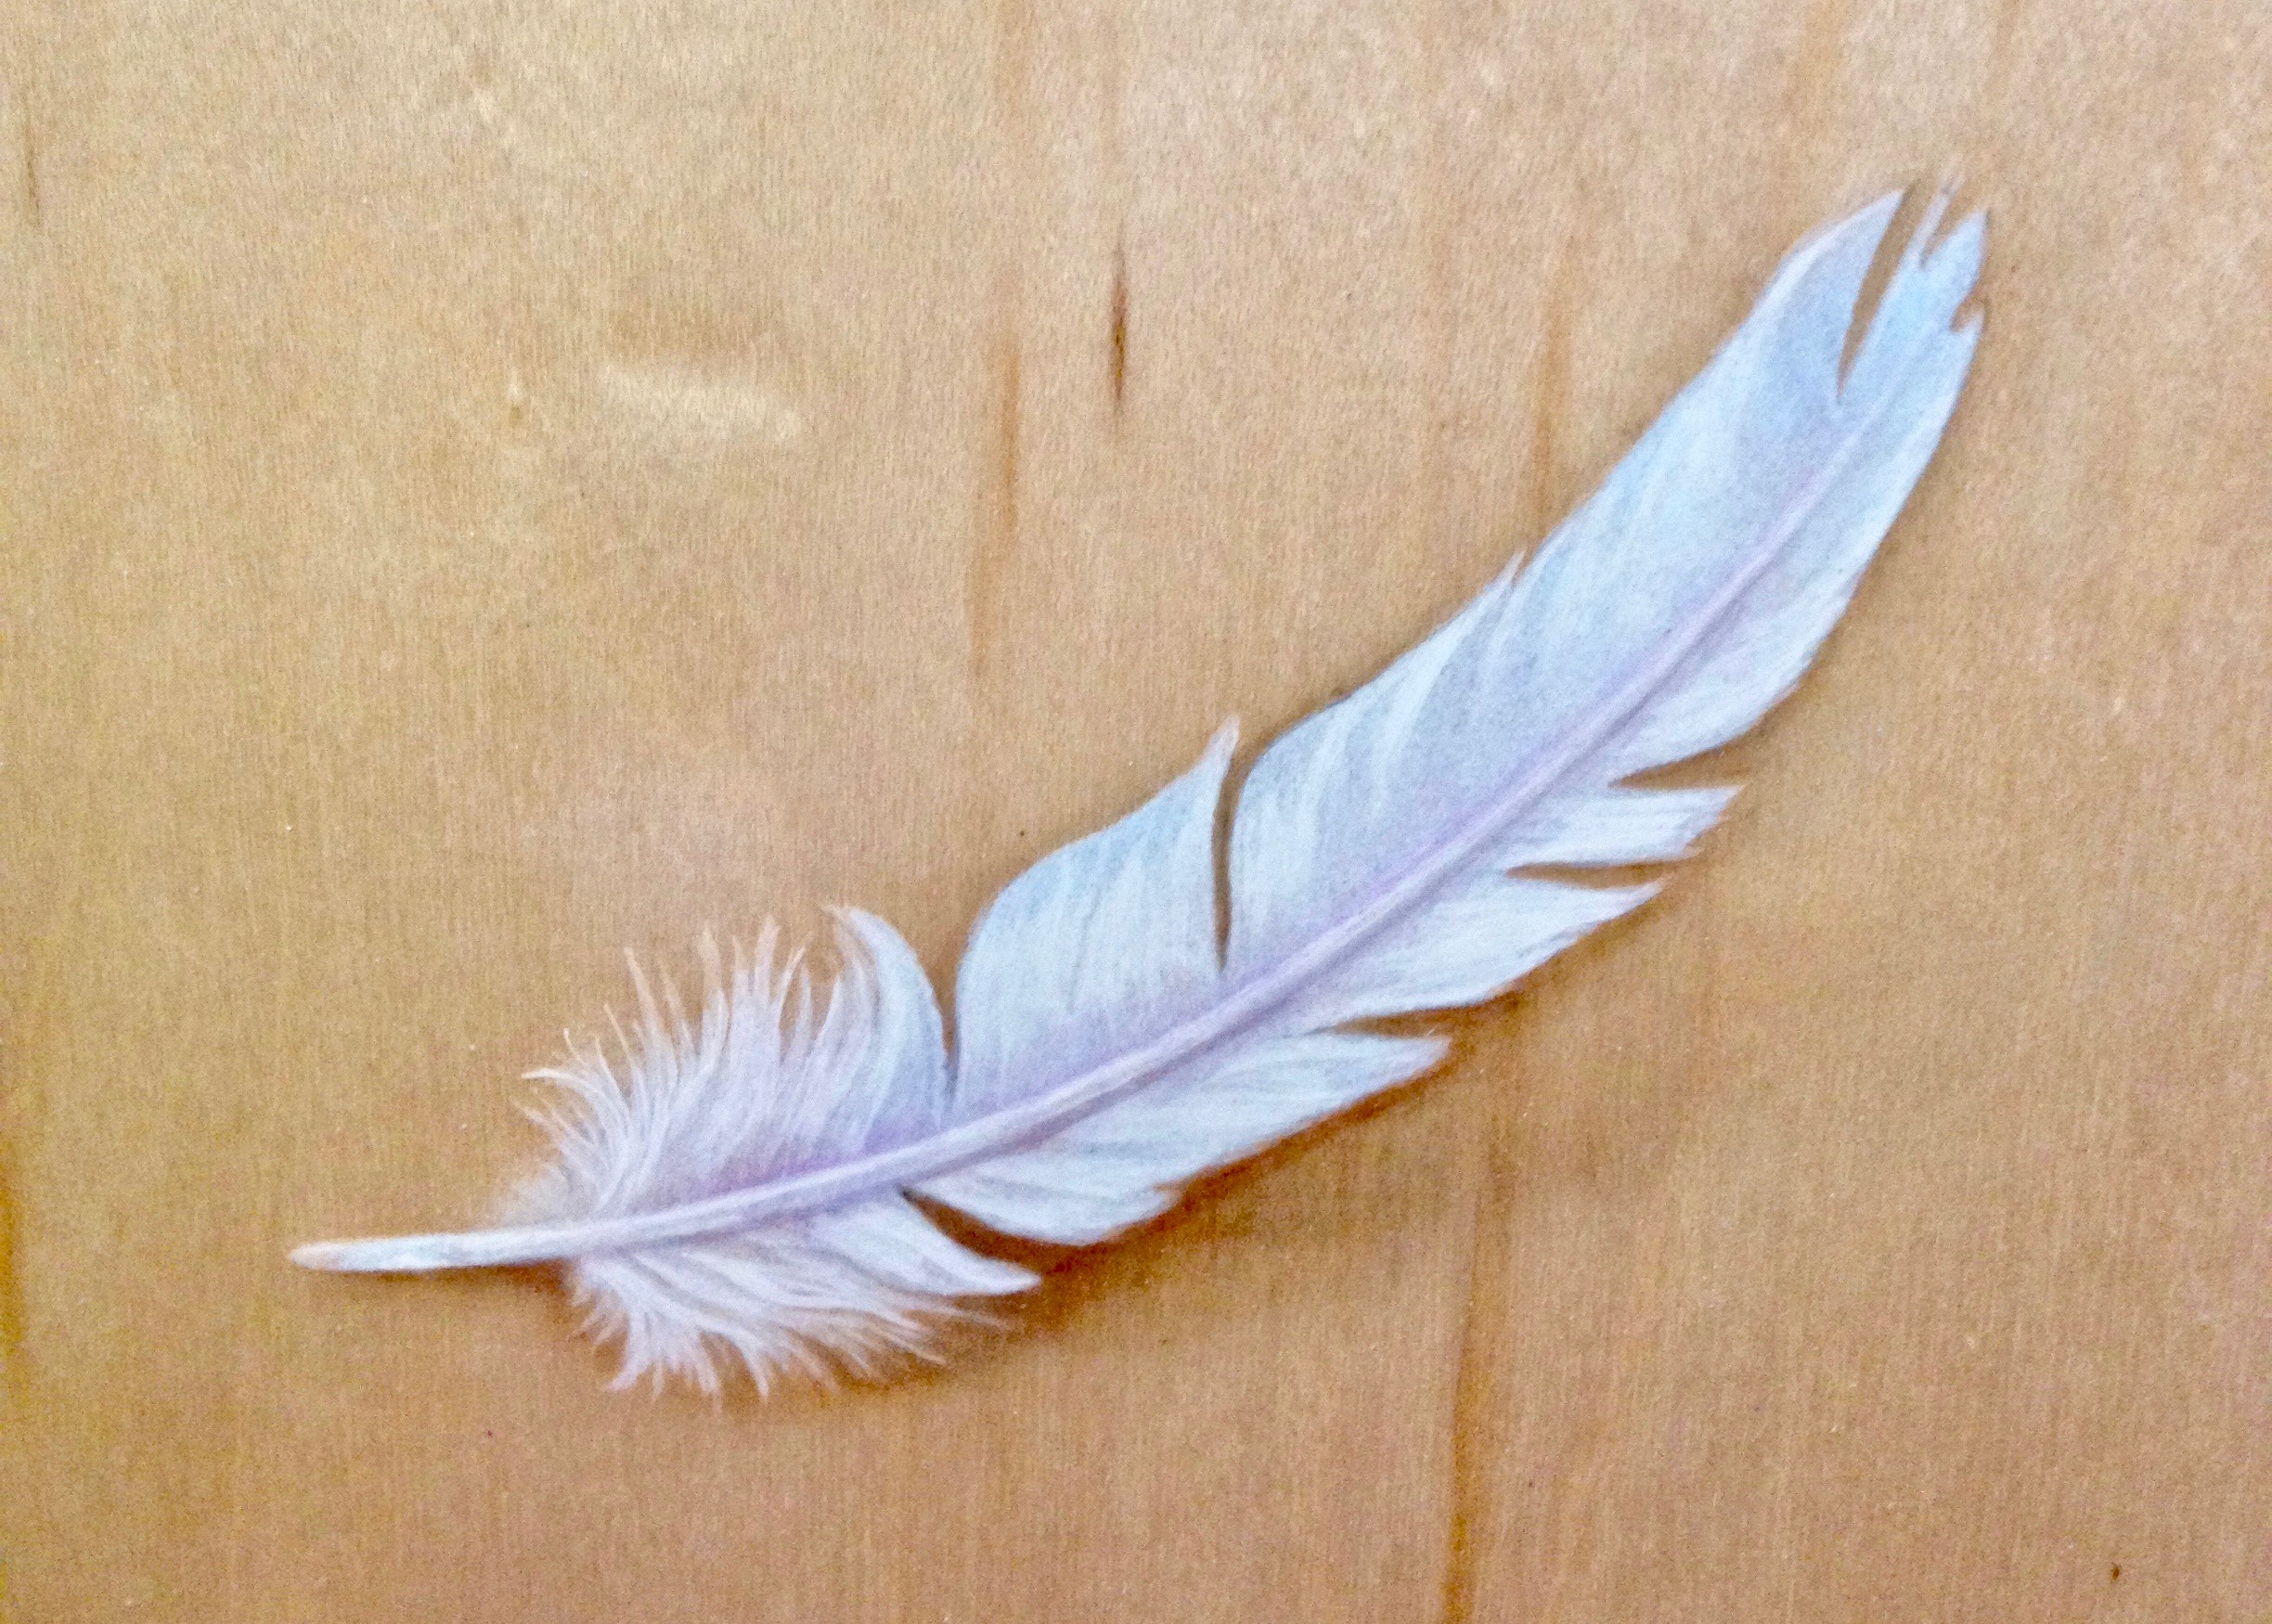 A feather, hand painted by Garen Rees, slips lightly down a soundboard.